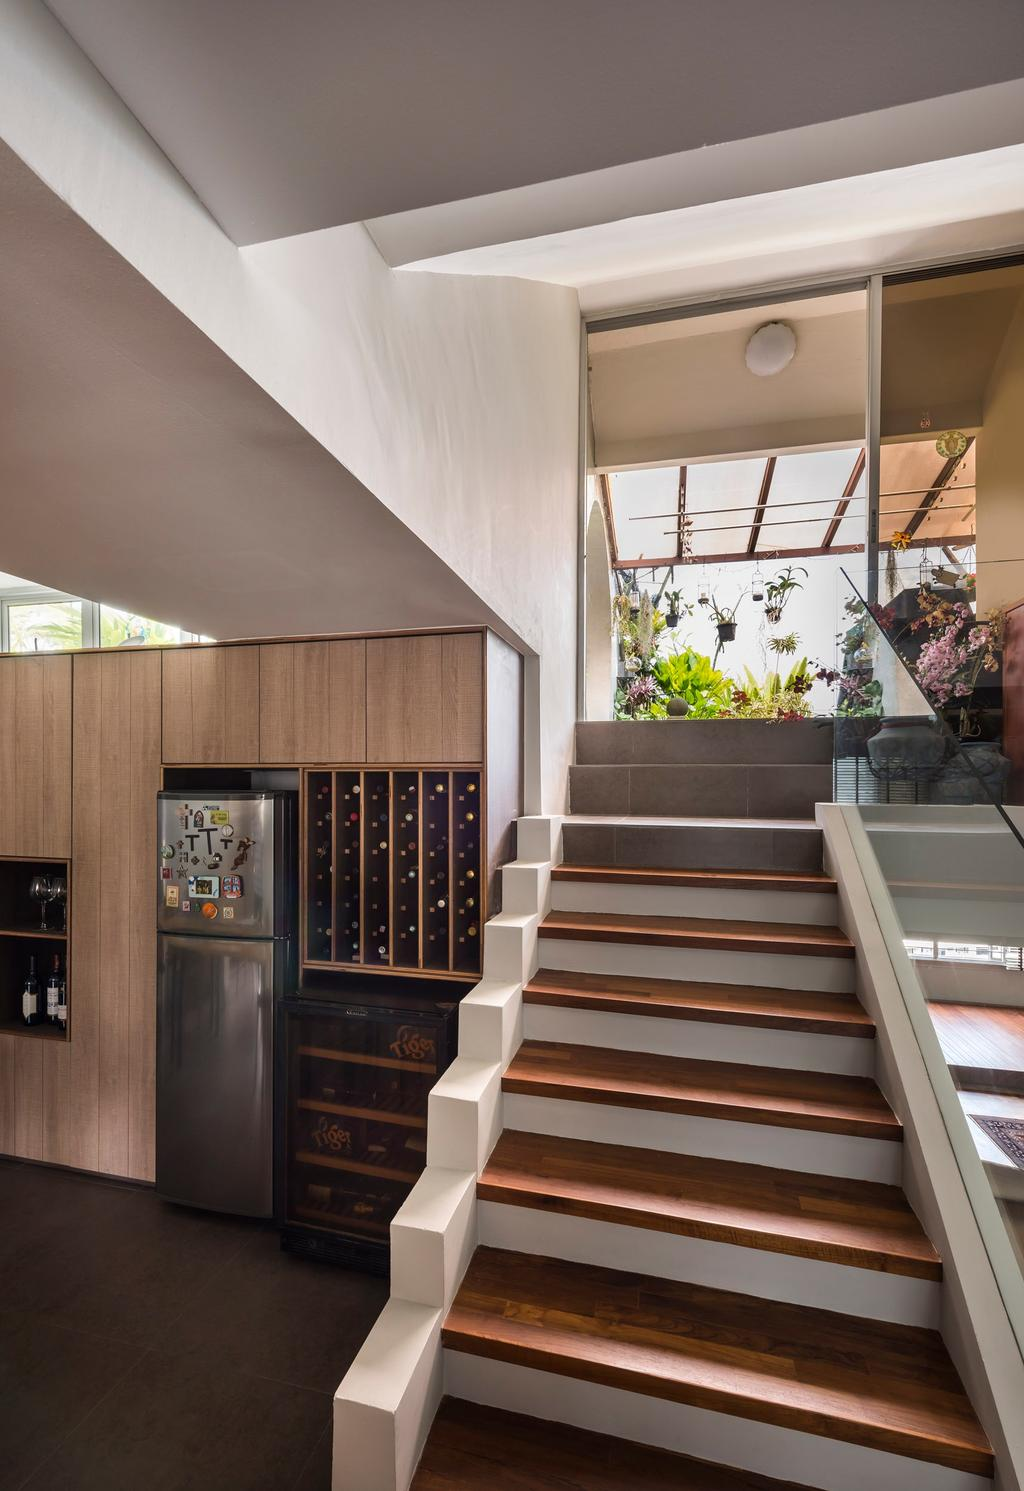 Eclectic, Condo, Pandan Valley, Interior Designer, Prozfile Design, Wooden Stairs, Wooden Staircase, Wine Cellar, Wine Storage, Wooden Storage, Stairs, Staircase, Flora, Jar, Plant, Potted Plant, Pottery, Vase, Banister, Handrail